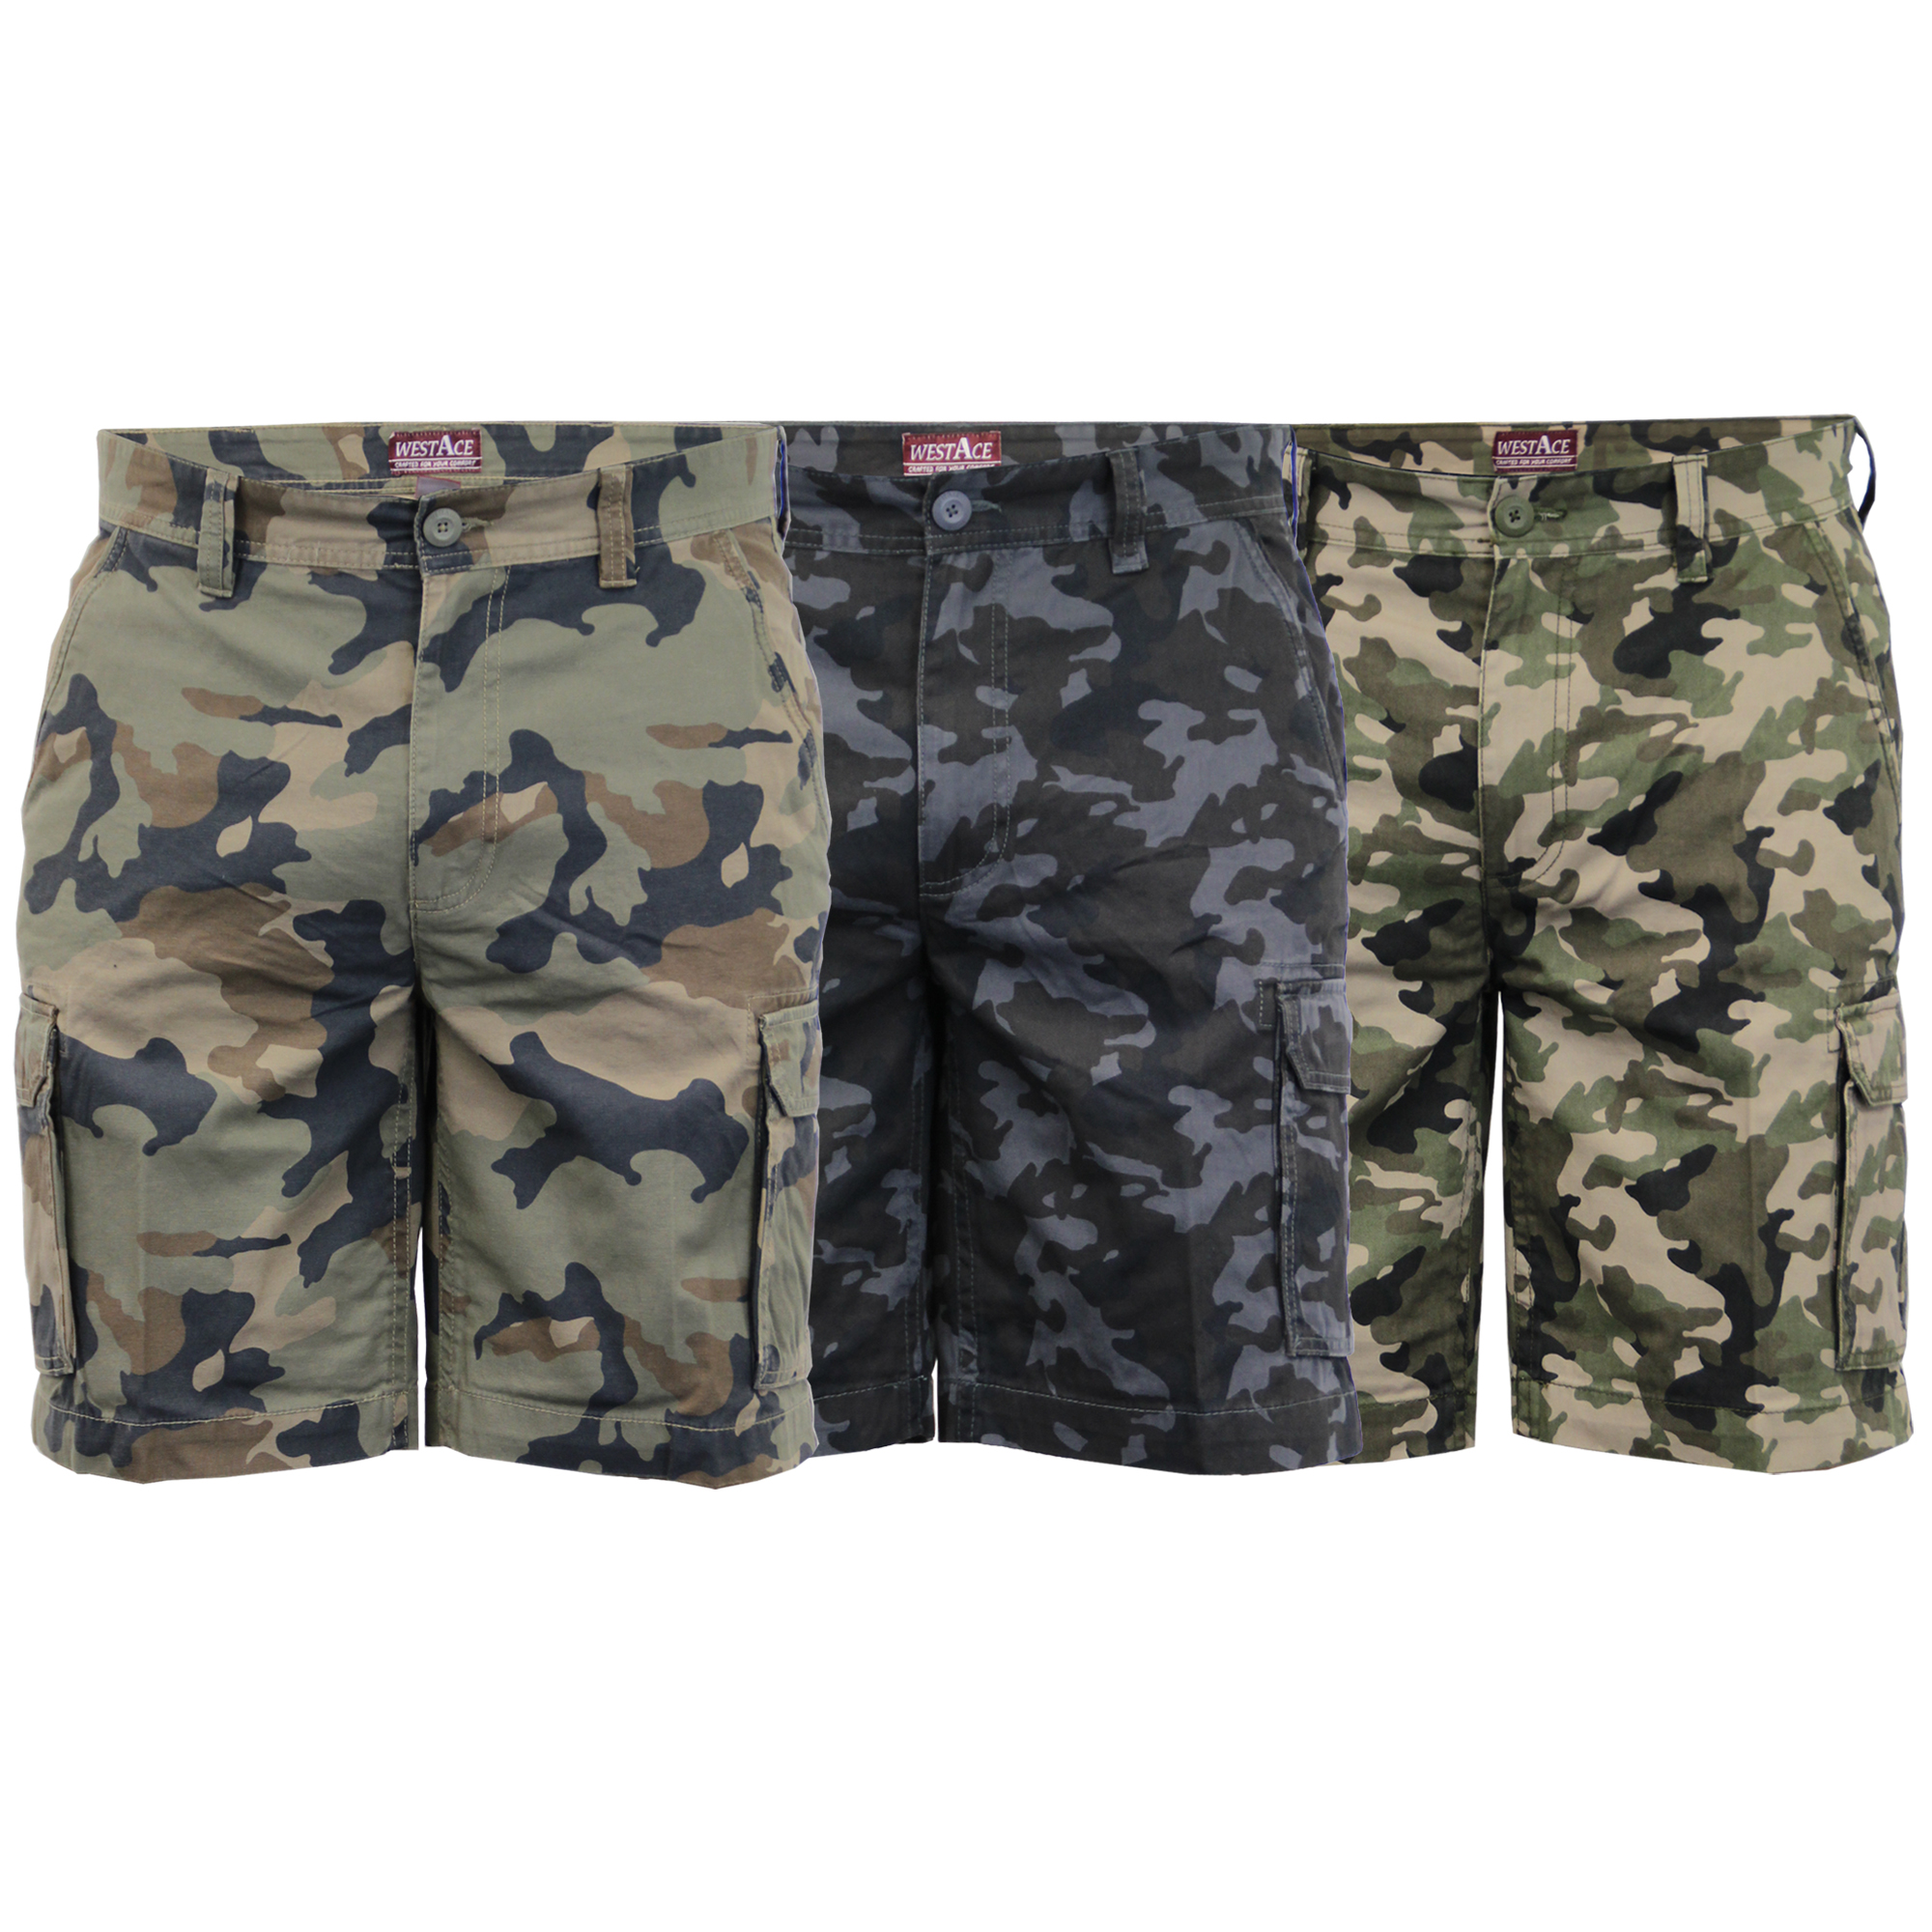 87e2cbc88f Mens Camouflage Cargo Shorts Combat Knee Length Military Army ...